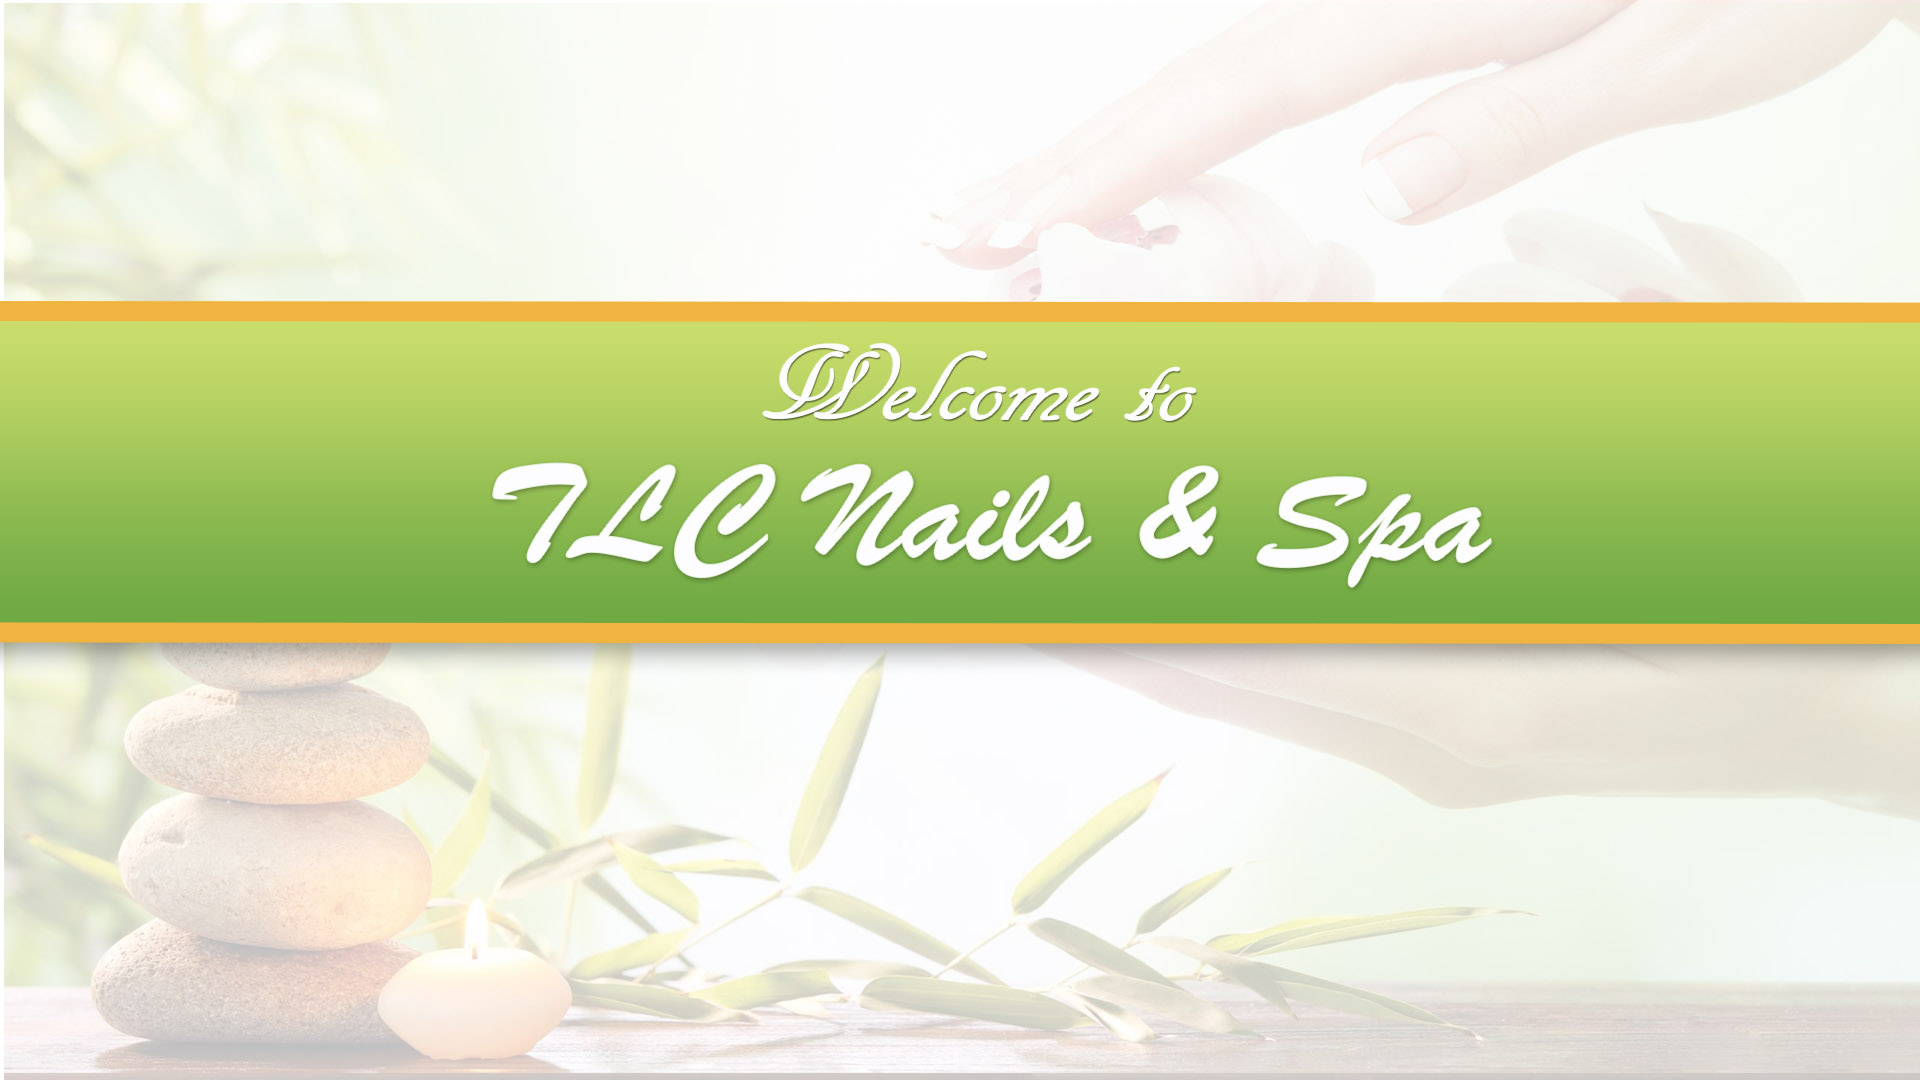 TLC Nails & Spa   Get yourself refreshed at our shop